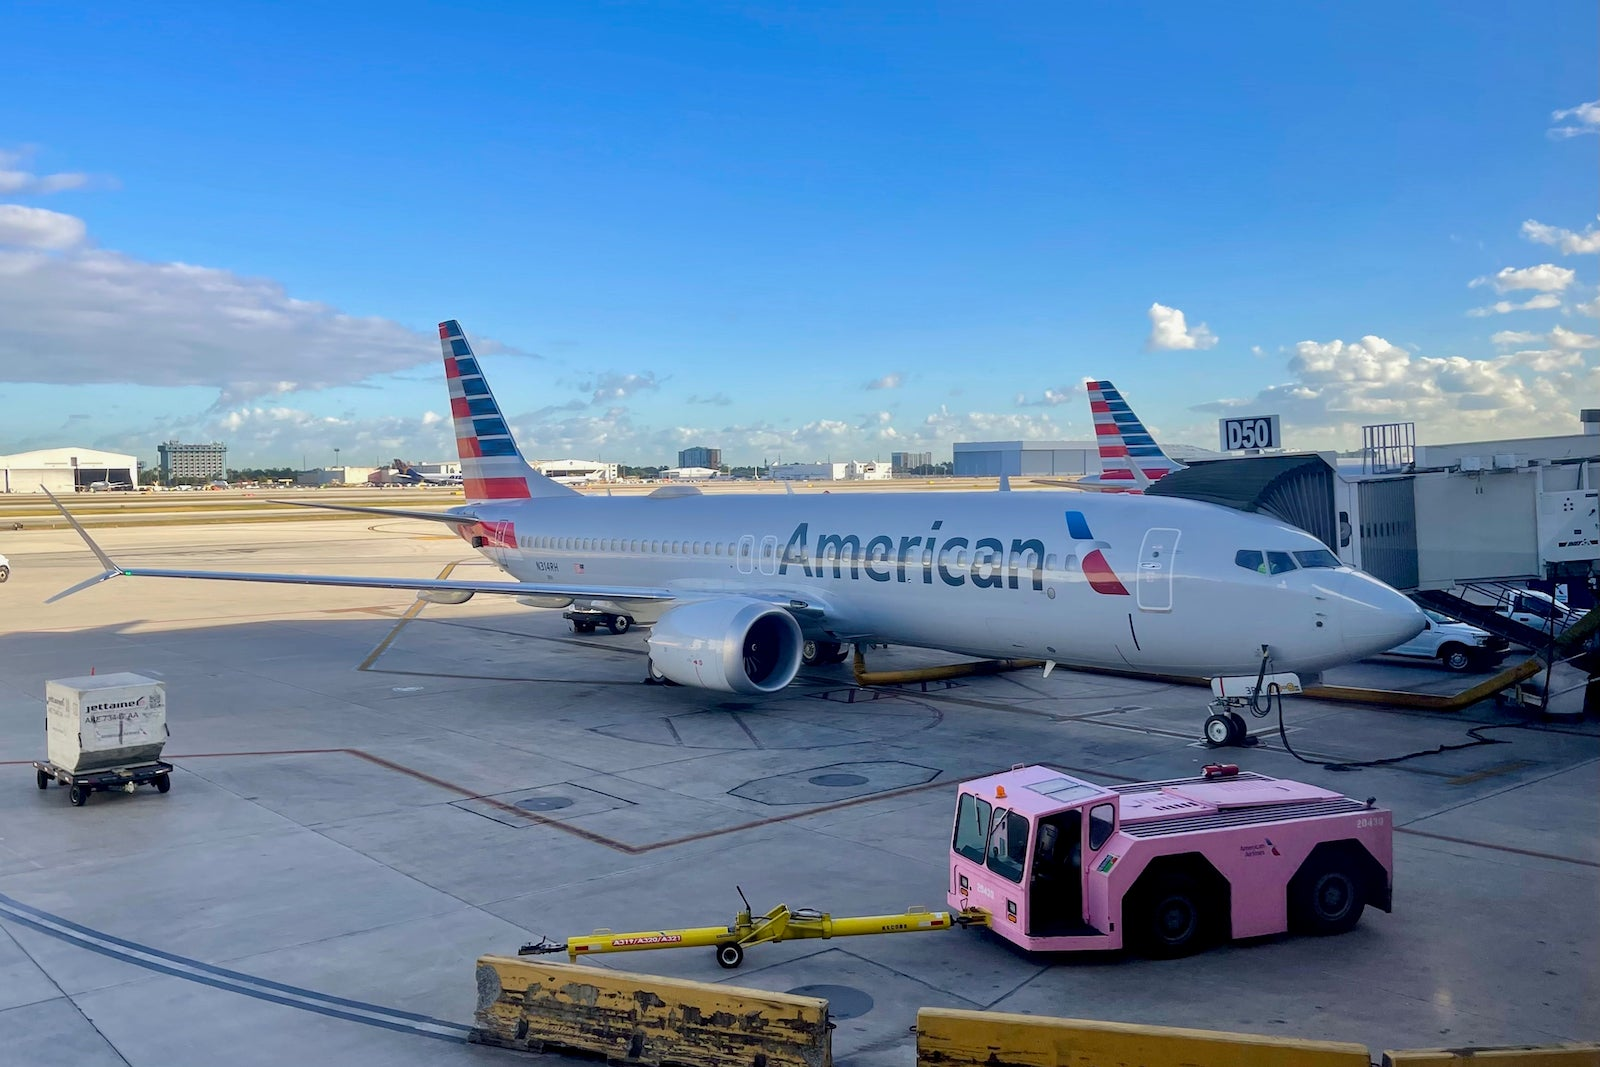 American Airlines will ban emotional support animals